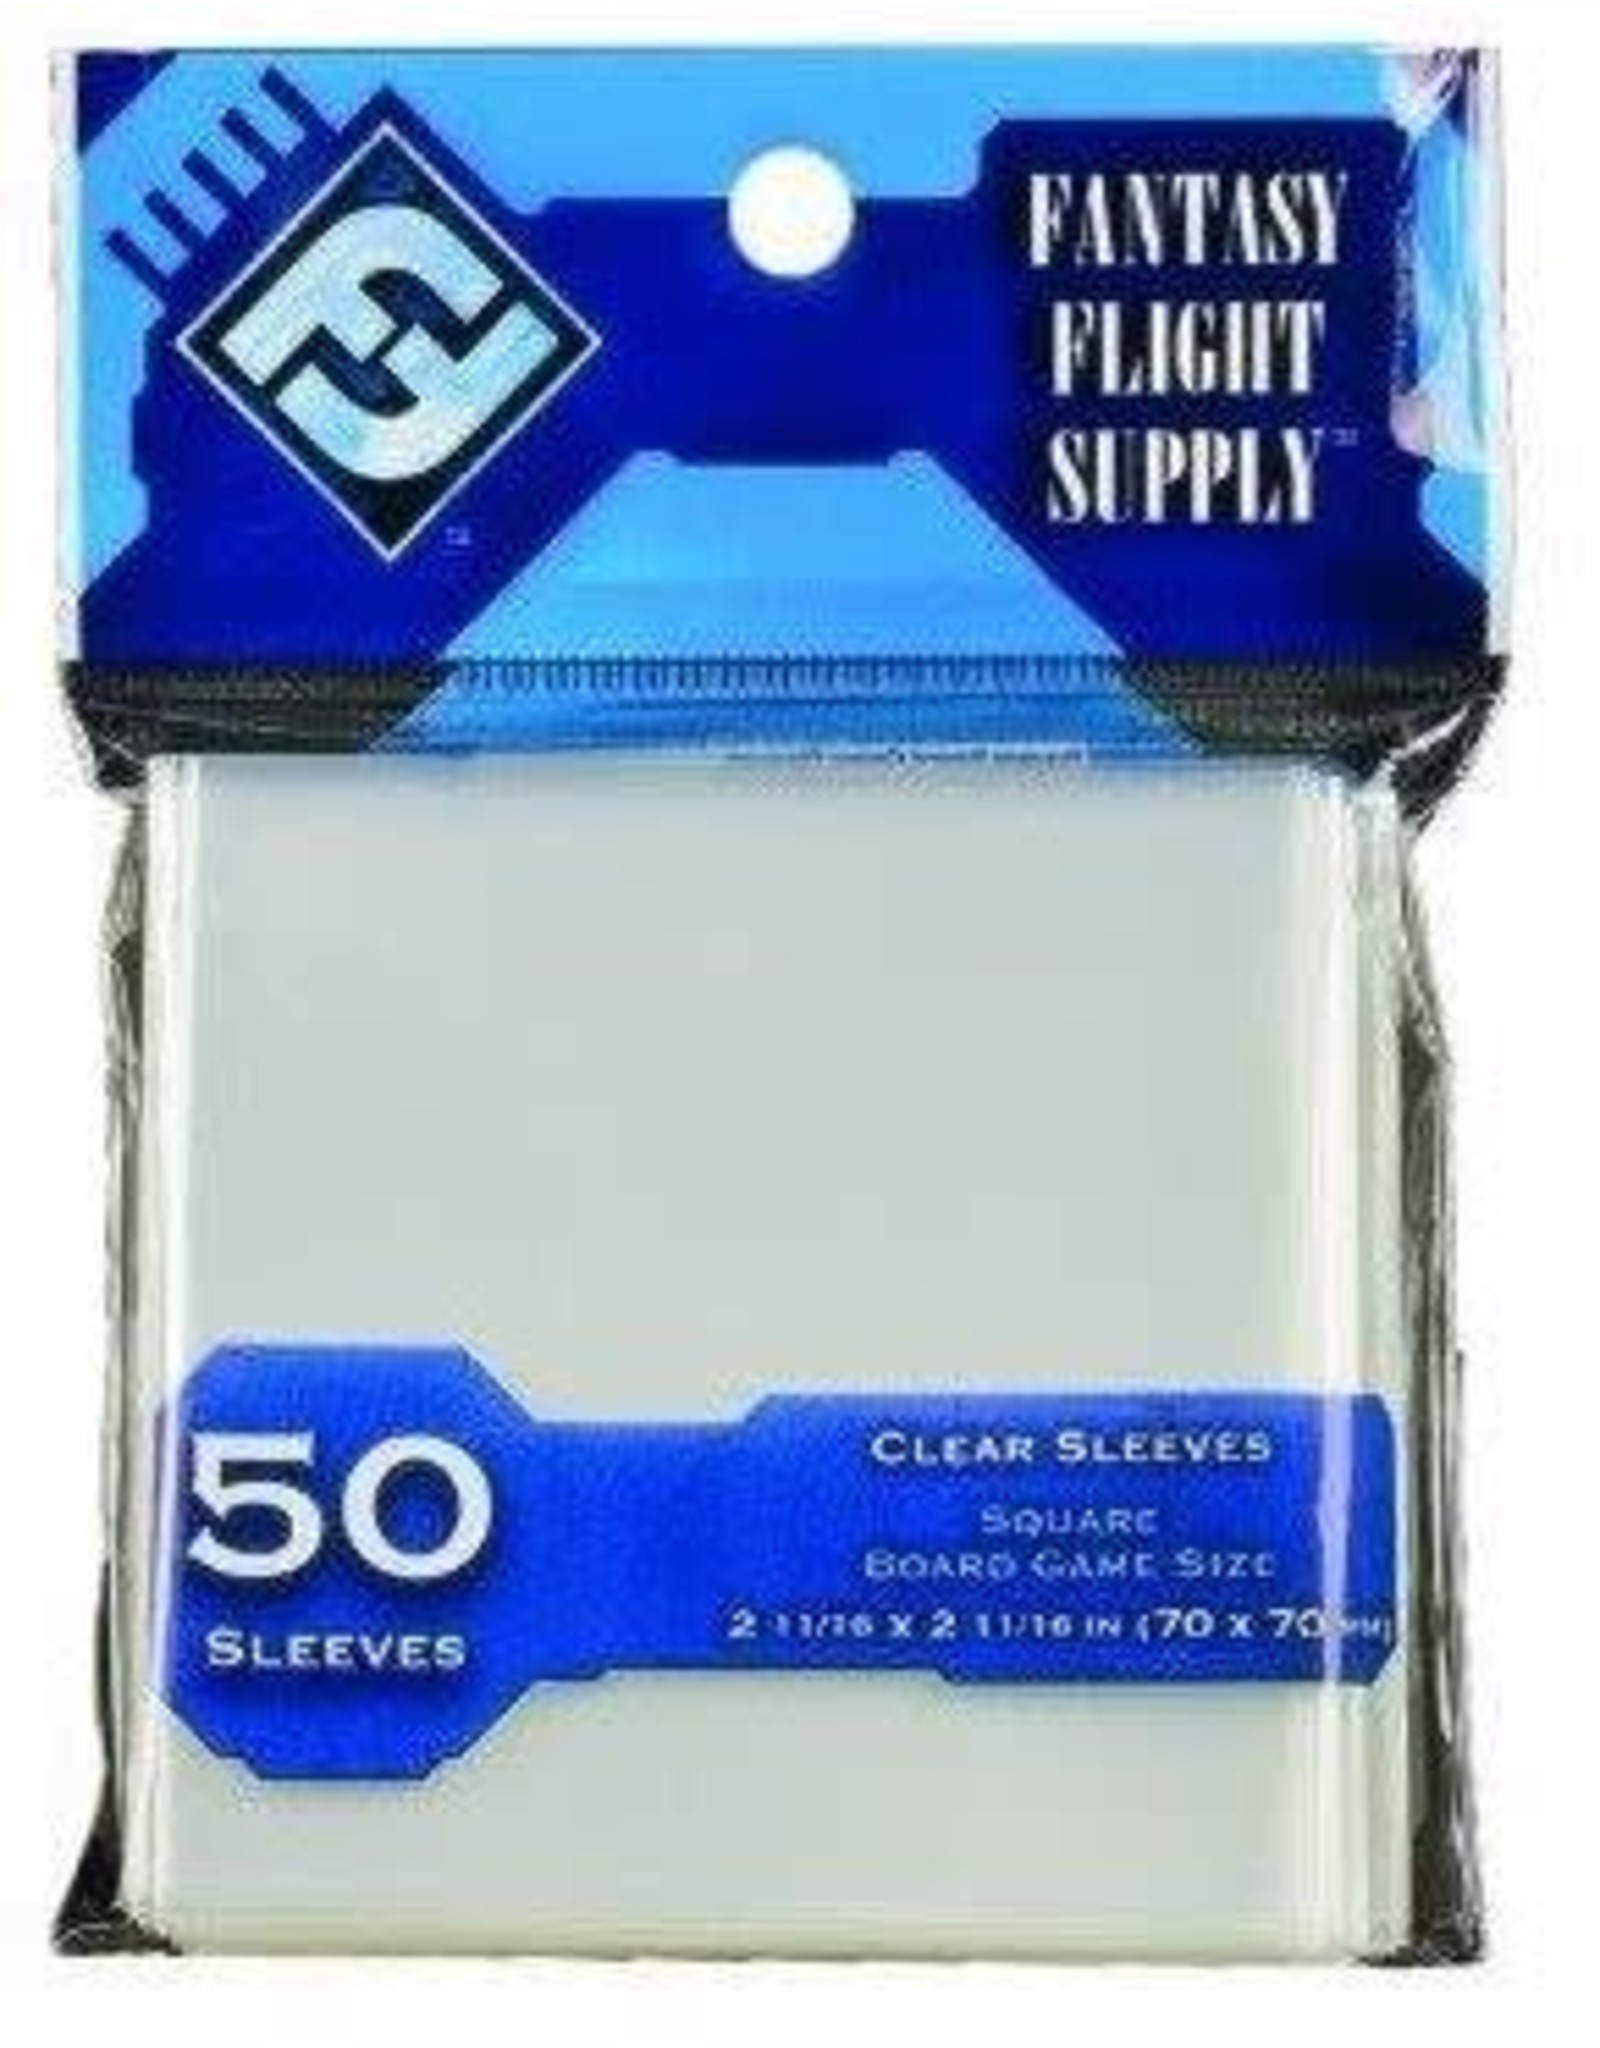 Fantasy Flight Fantasy Flight Fantasy Flight Supply Square Board Game Sleeves